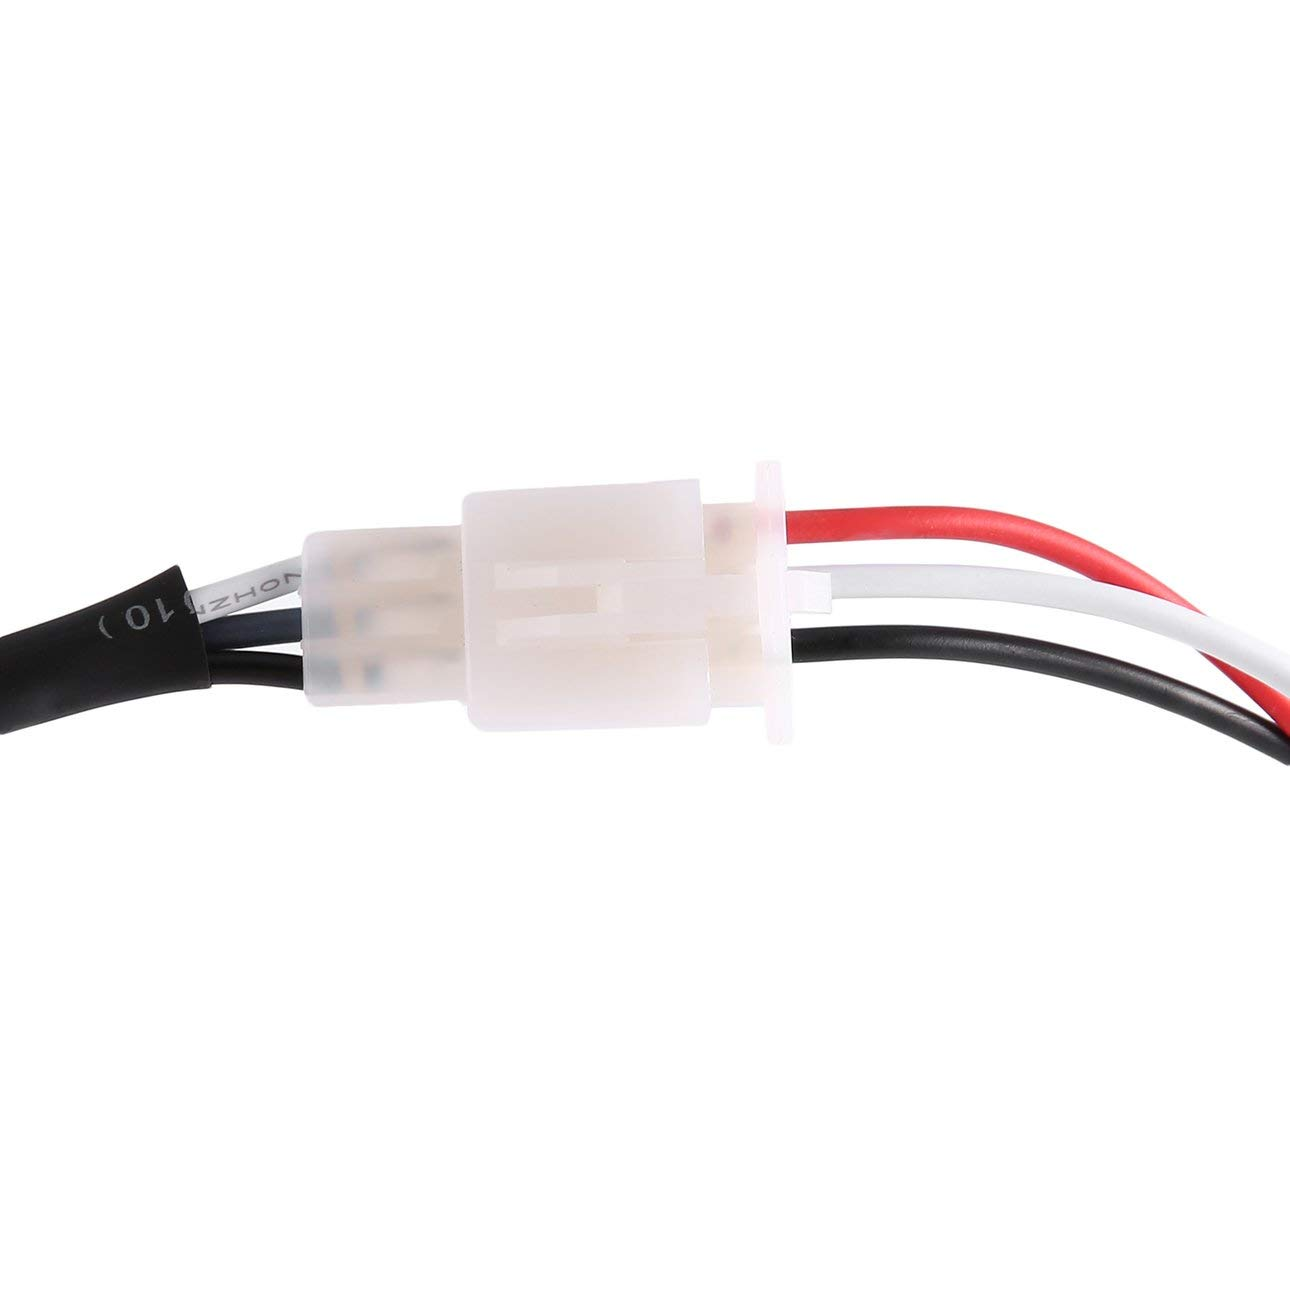 Liobaba 12v 40a Led Hid Fog Work Driving Light Wiring Details About Harness Kit Loom Switch Relaycolorblack Garden Outdoor